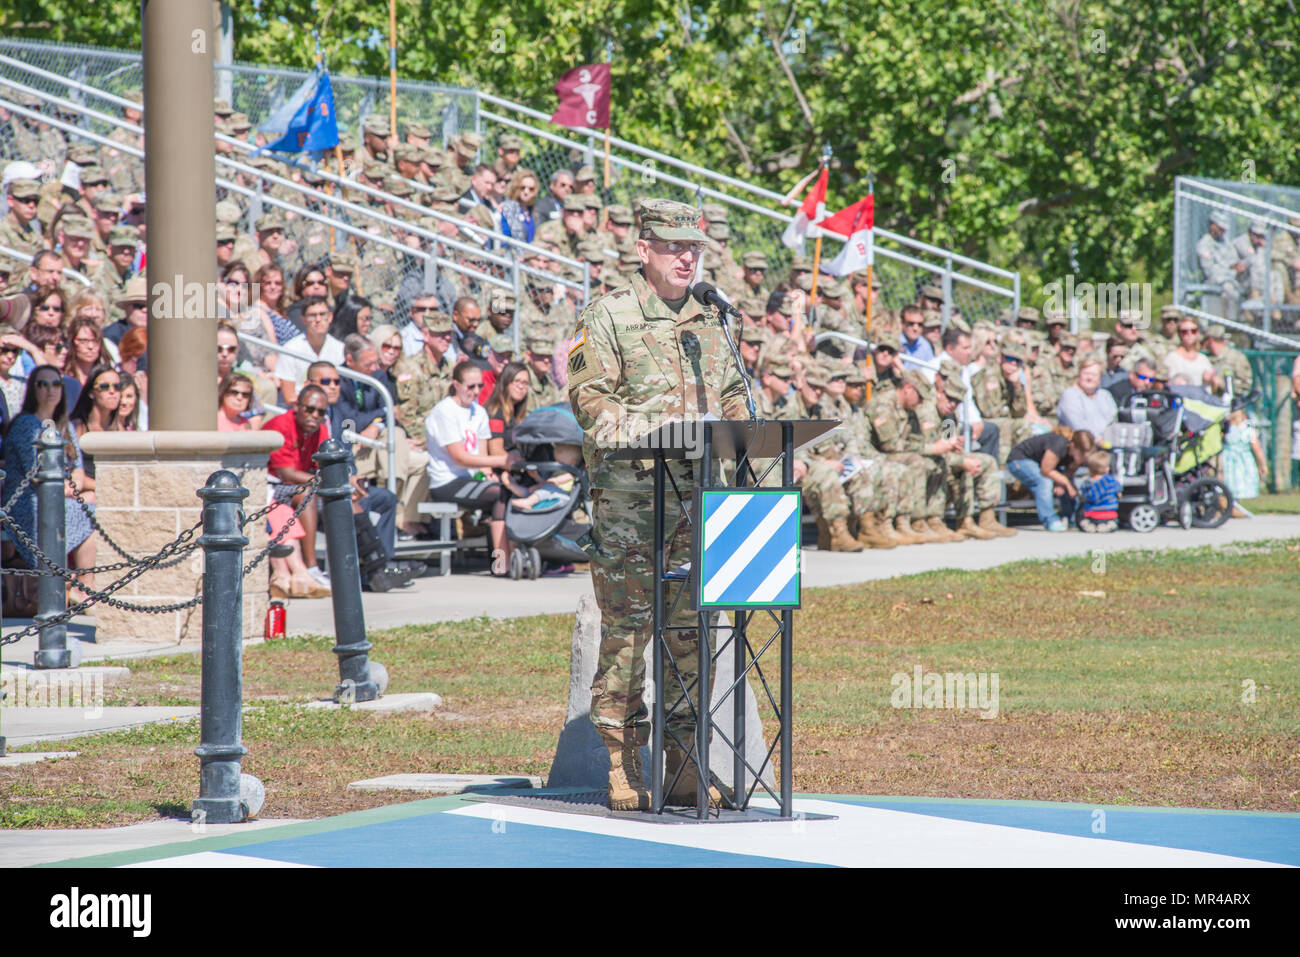 Gen. Robert Abrams, commander U.S. Forces Command, provides remarks at the 3rd Infantry Division change of command ceremony at Cotrell Field, Fort Stewart, GA, May 8, 2017. (U.S. Army Photo by Lt. Col. Brian J. Fickel) - Stock Image